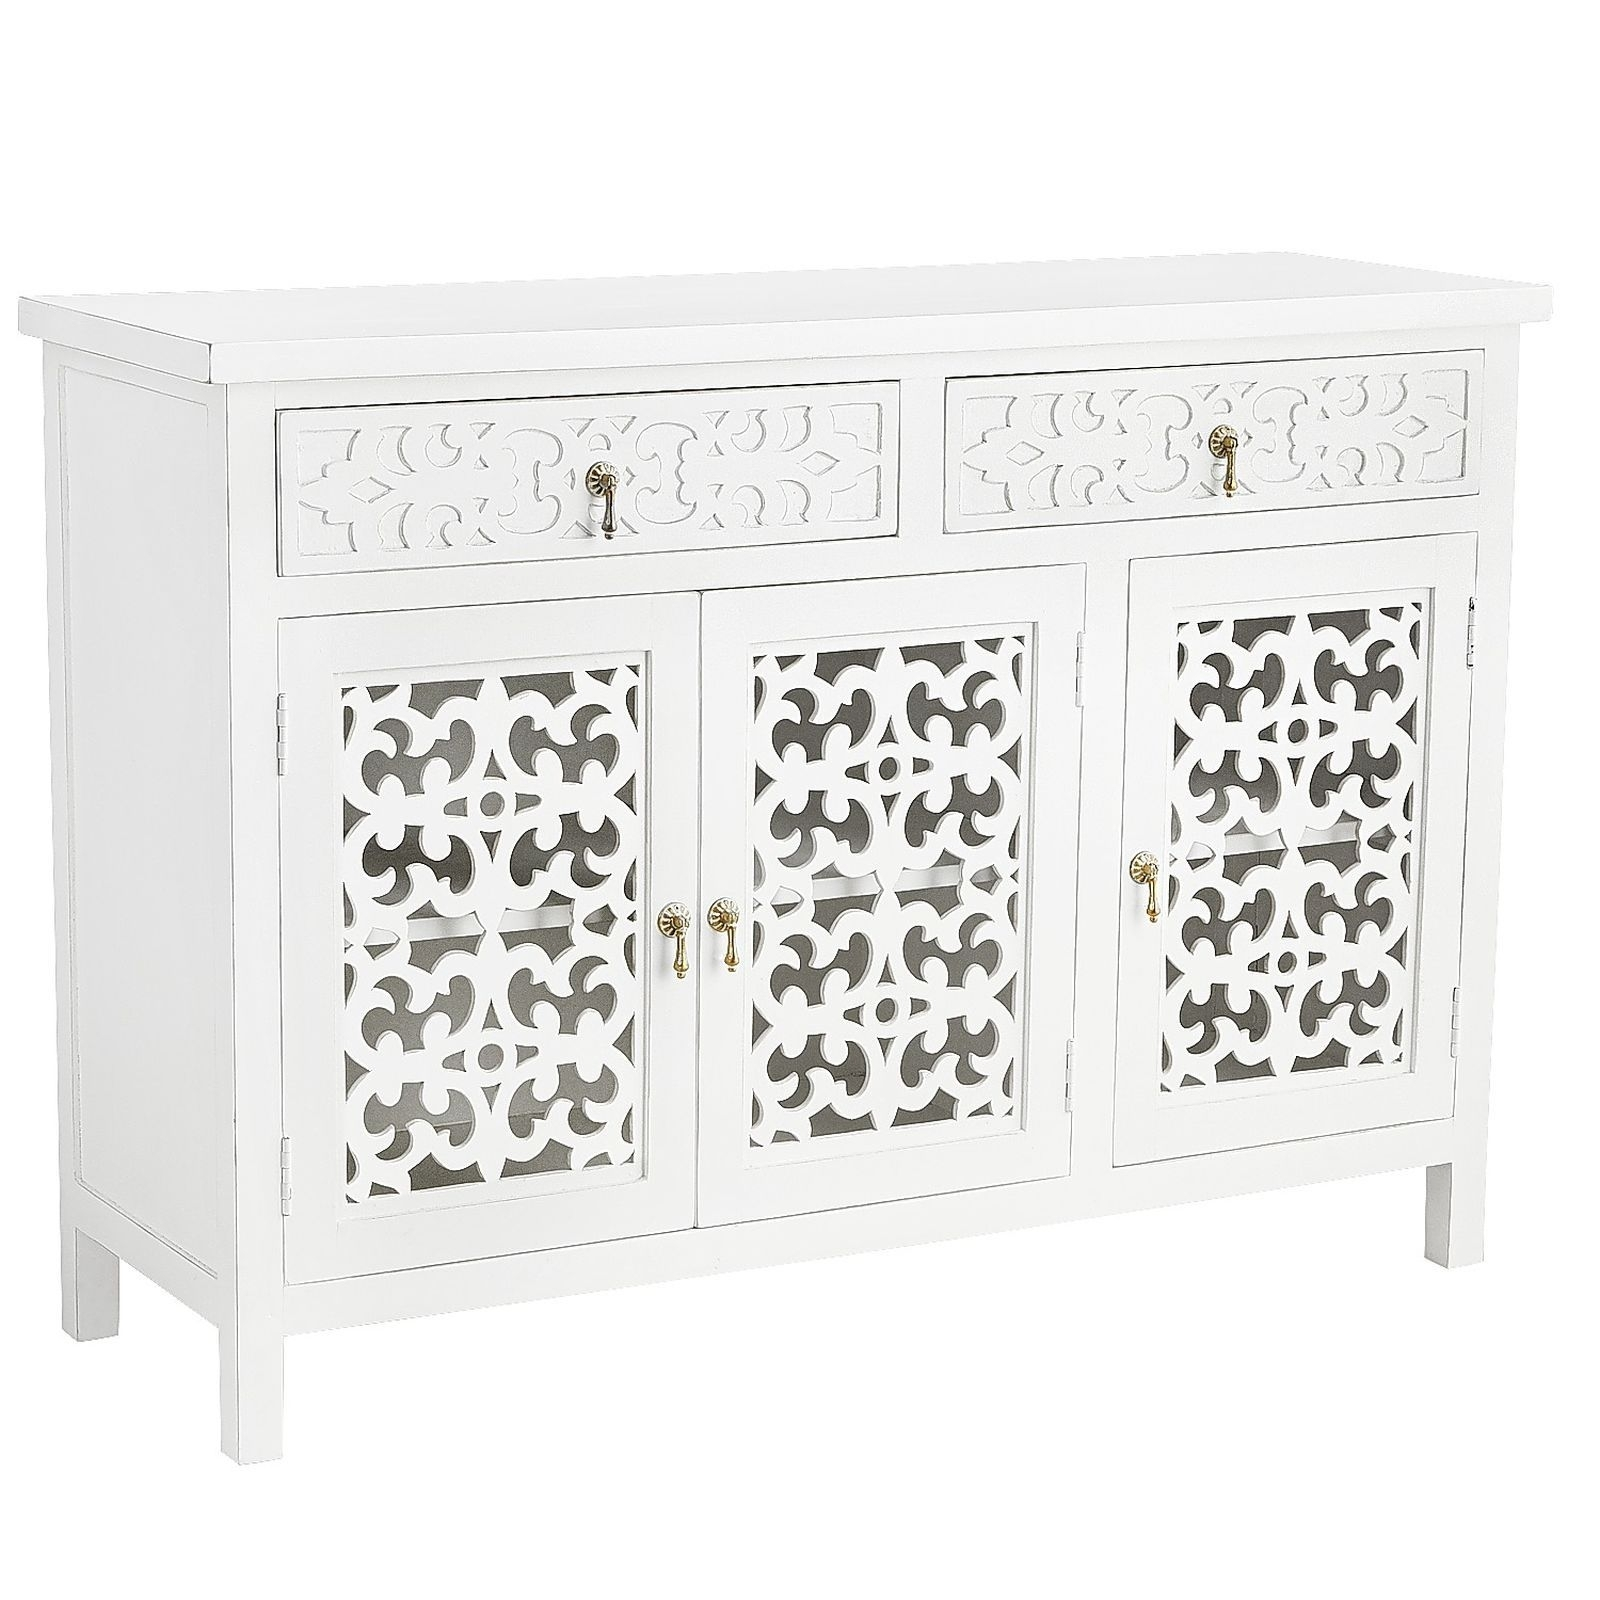 Our Landyn Tv Stand Proves A Media Cabinet Needn't Be Masculine Intended For 2018 Mandara 3 Drawer 2 Door Sideboards (View 5 of 20)